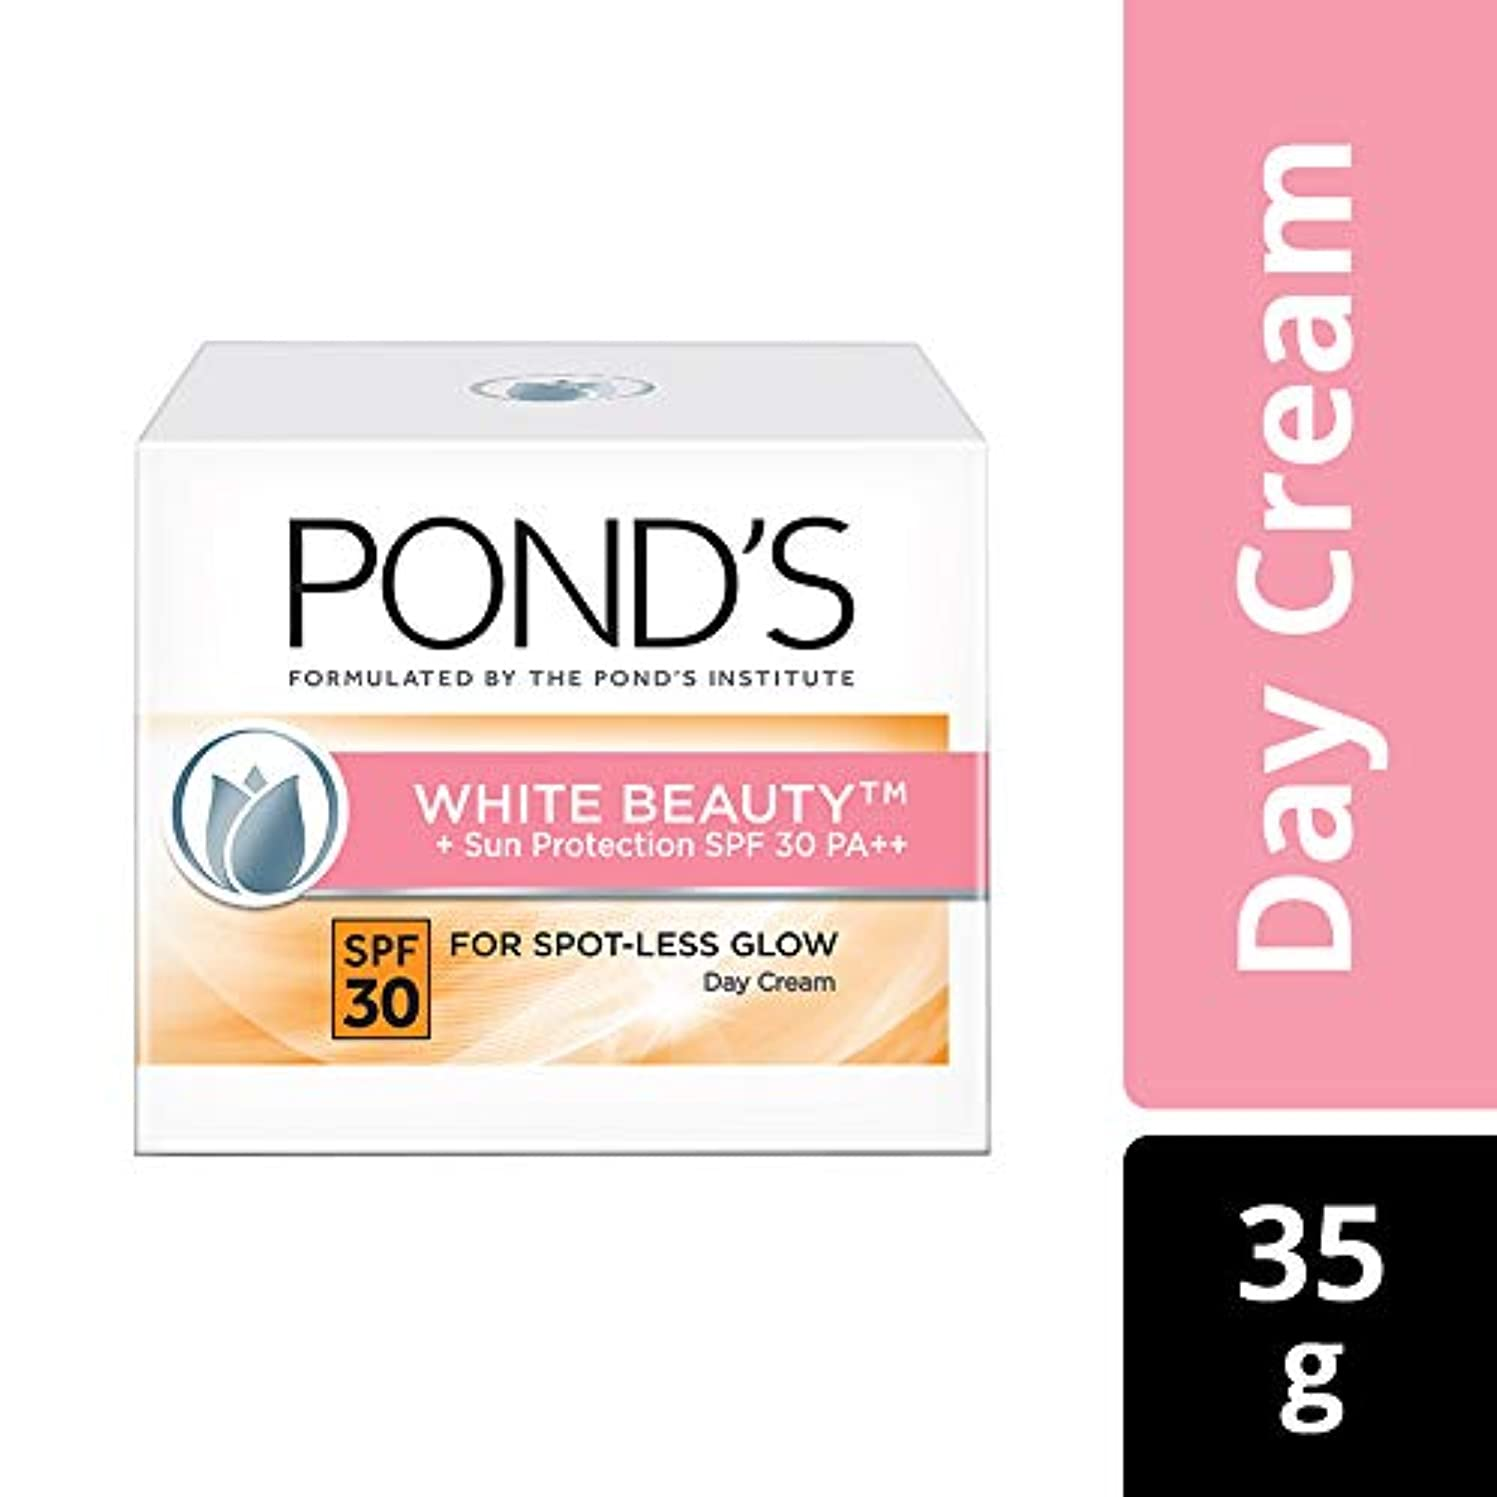 ハンカチゲート心理的にPOND'S White Beauty Sun Protection SPF 30 Day Cream, 35 gms (並行インポート) India